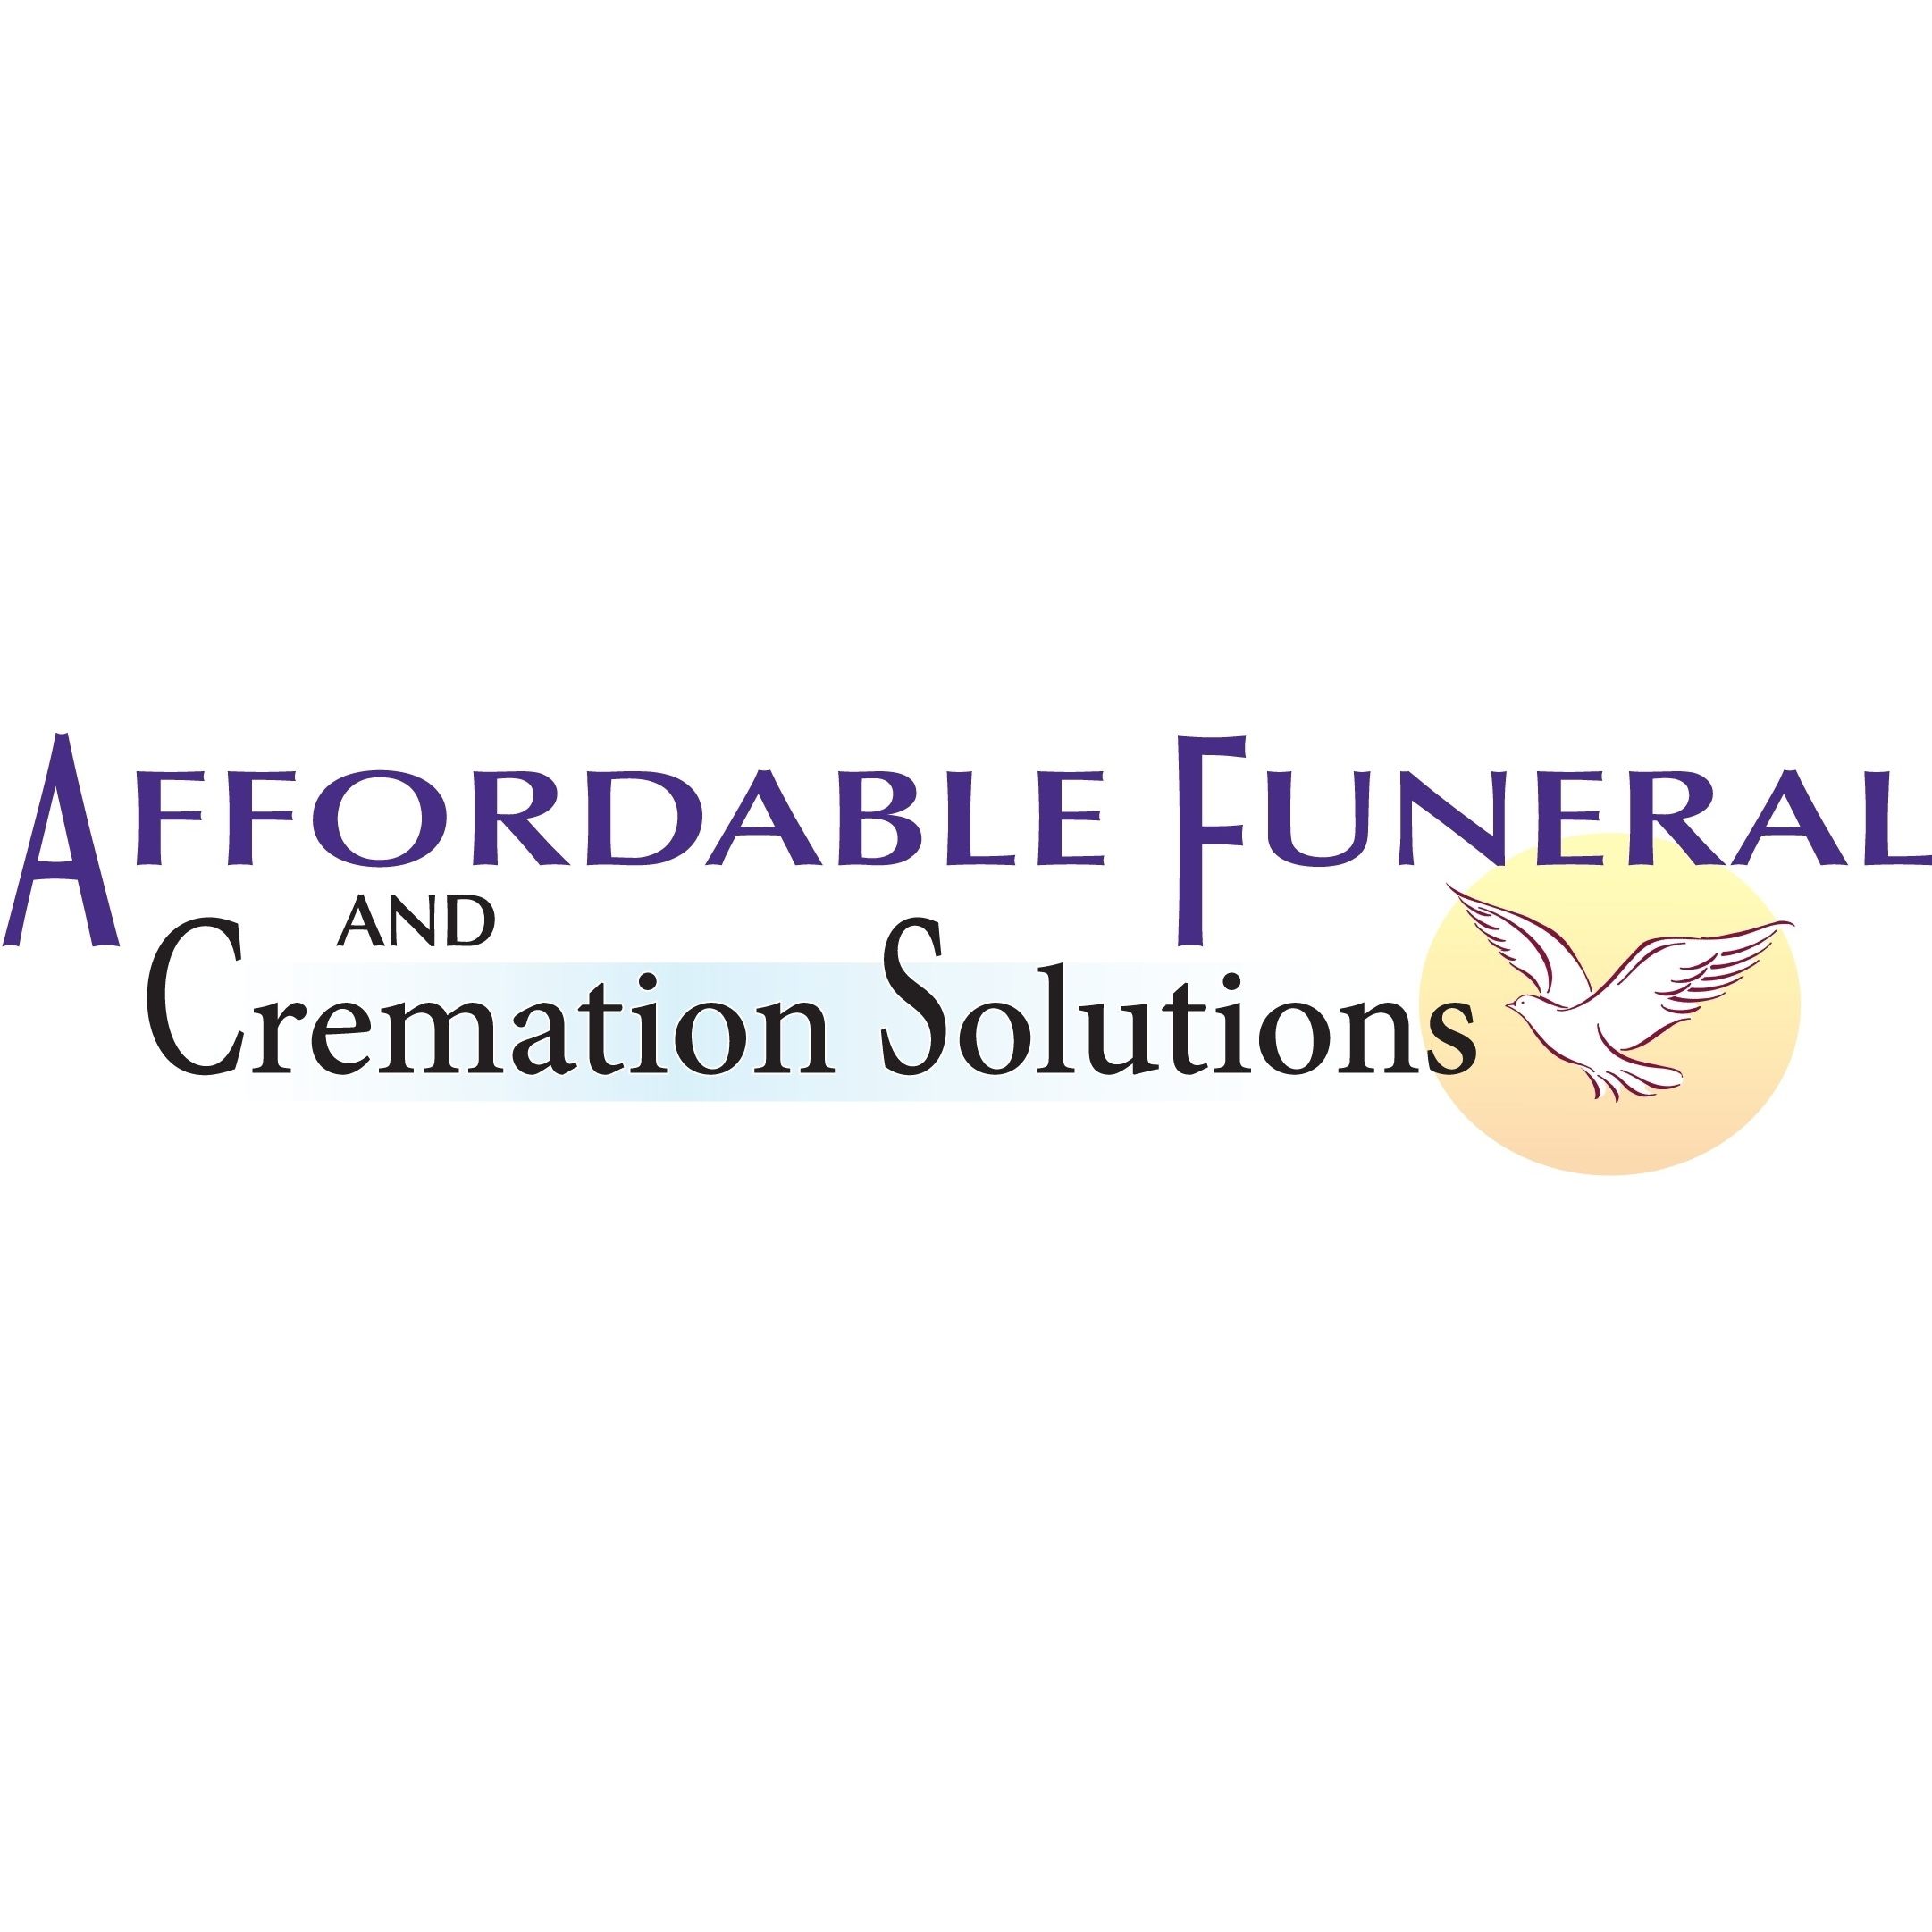 Affordable Funeral & Cremation Solutions